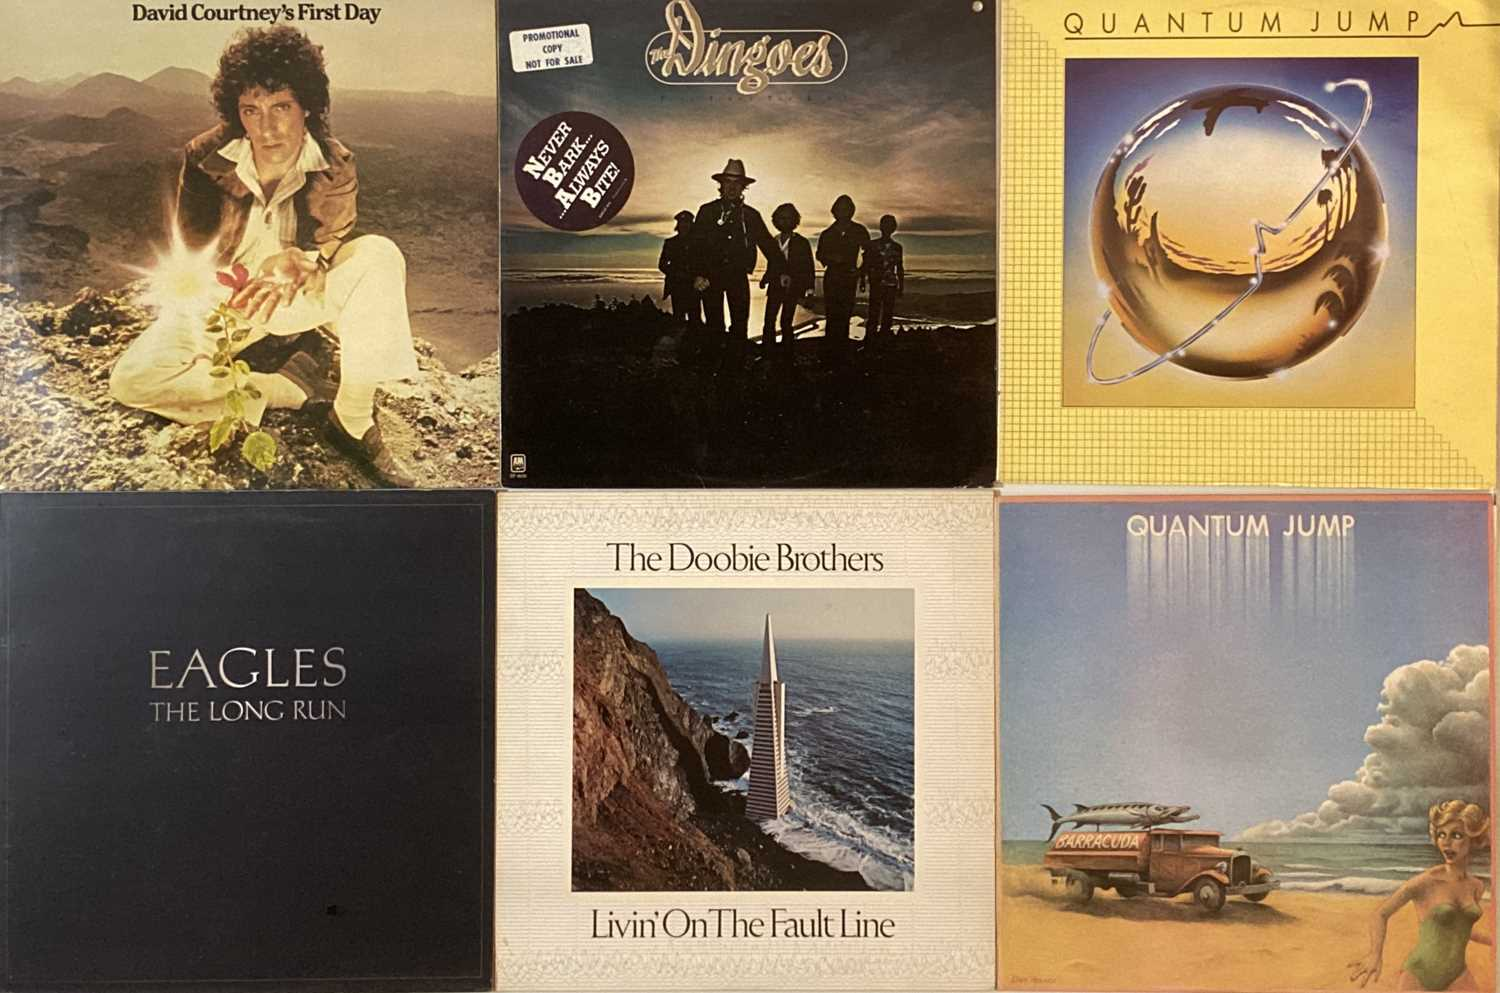 SOFT ROCK/ AOR - LPs - Image 4 of 6